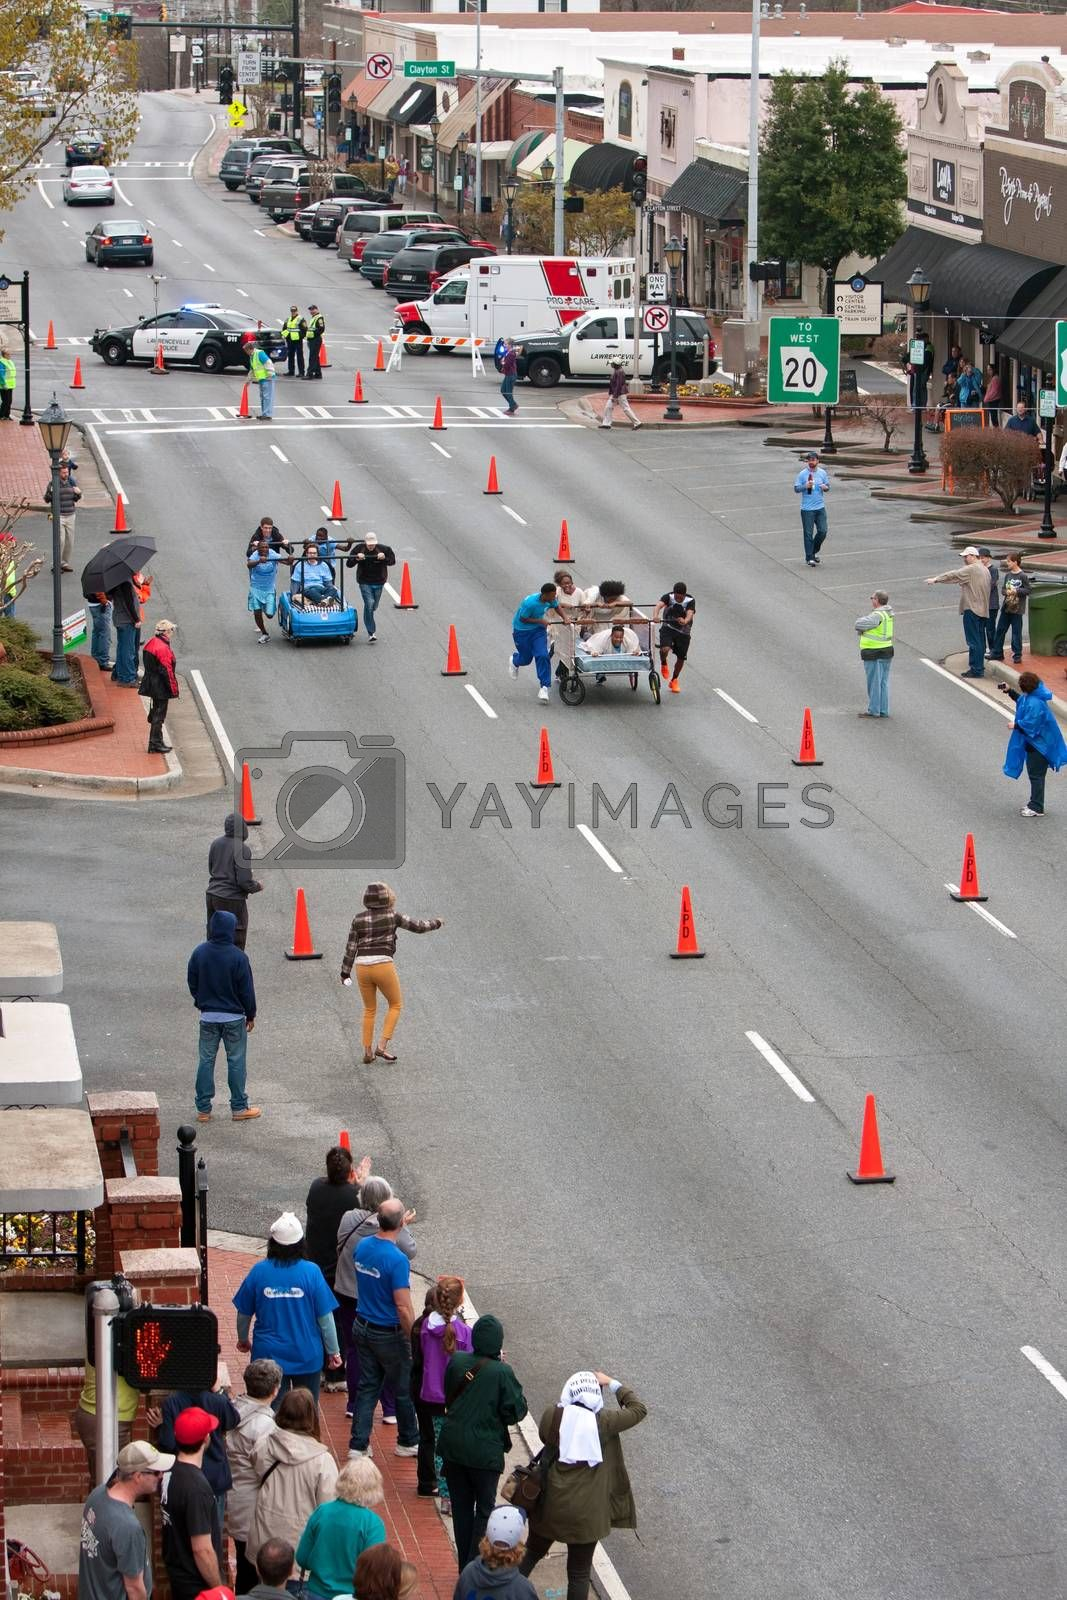 Royalty free image of Two Teams Race Beds On City Street In Fundraiser Event by BluIz60